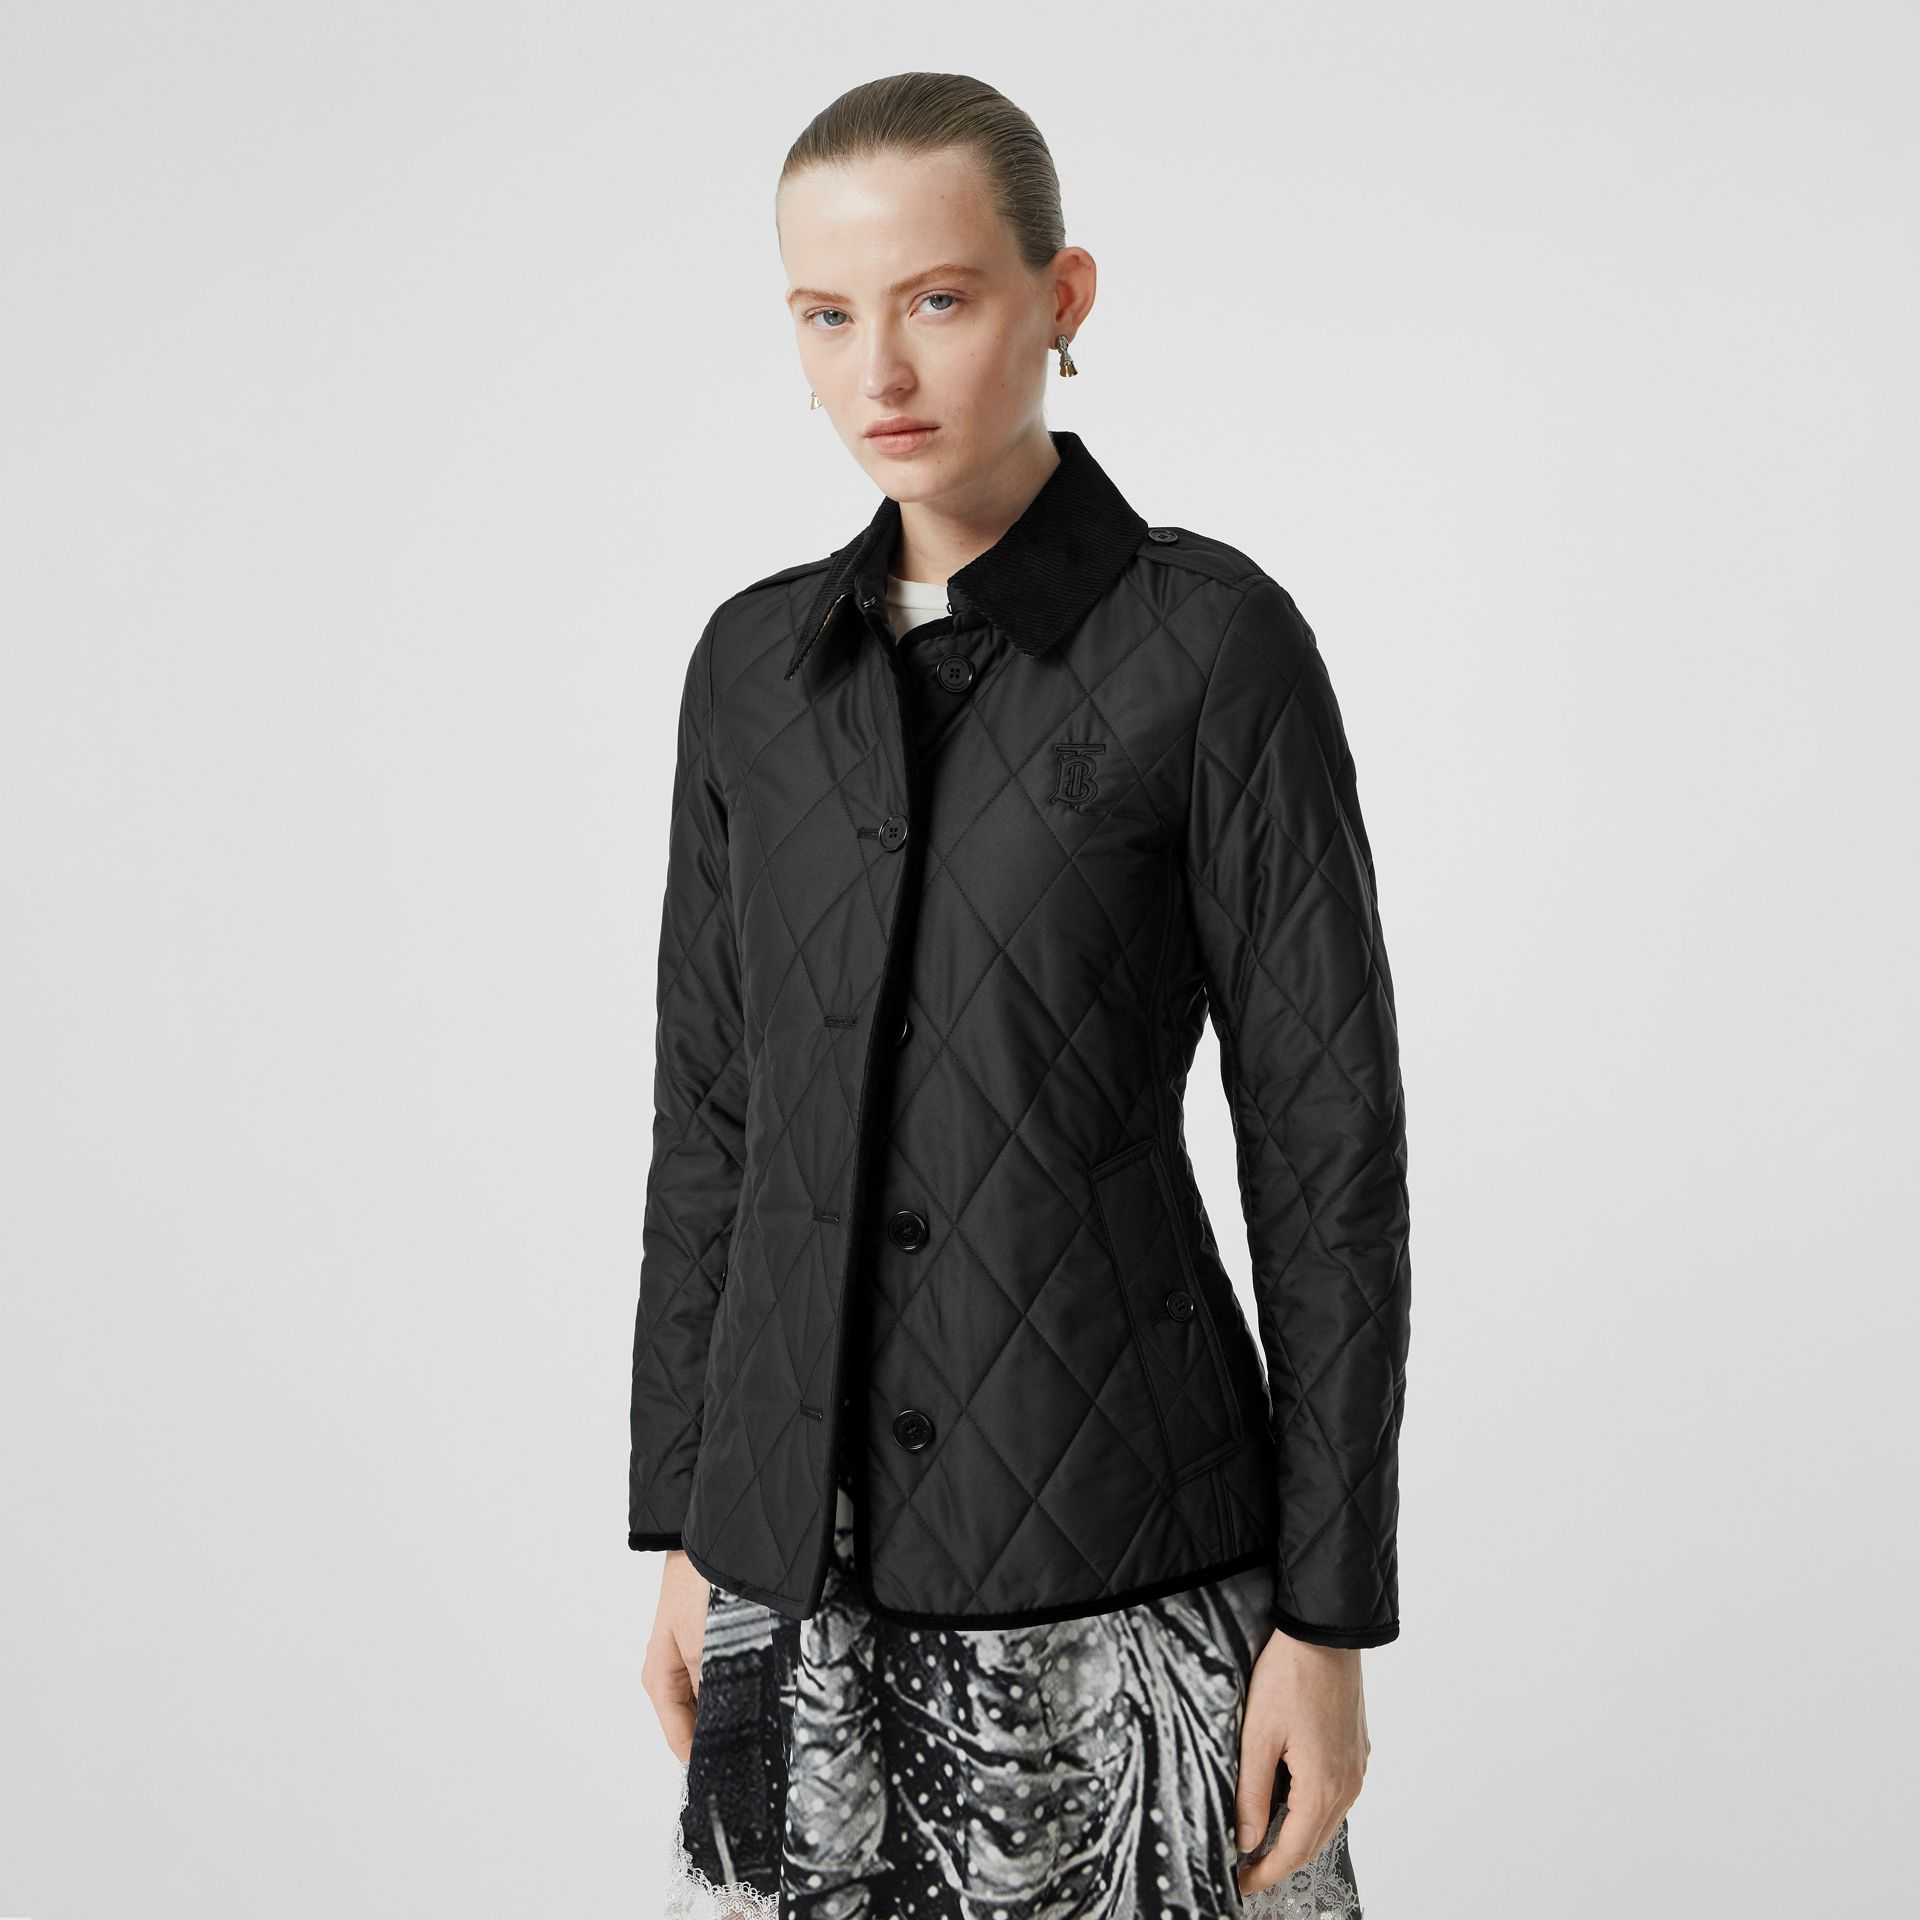 Monogram Motif Diamond Quilted Jacket in Black - Women | Burberry Singapore - gallery image 6